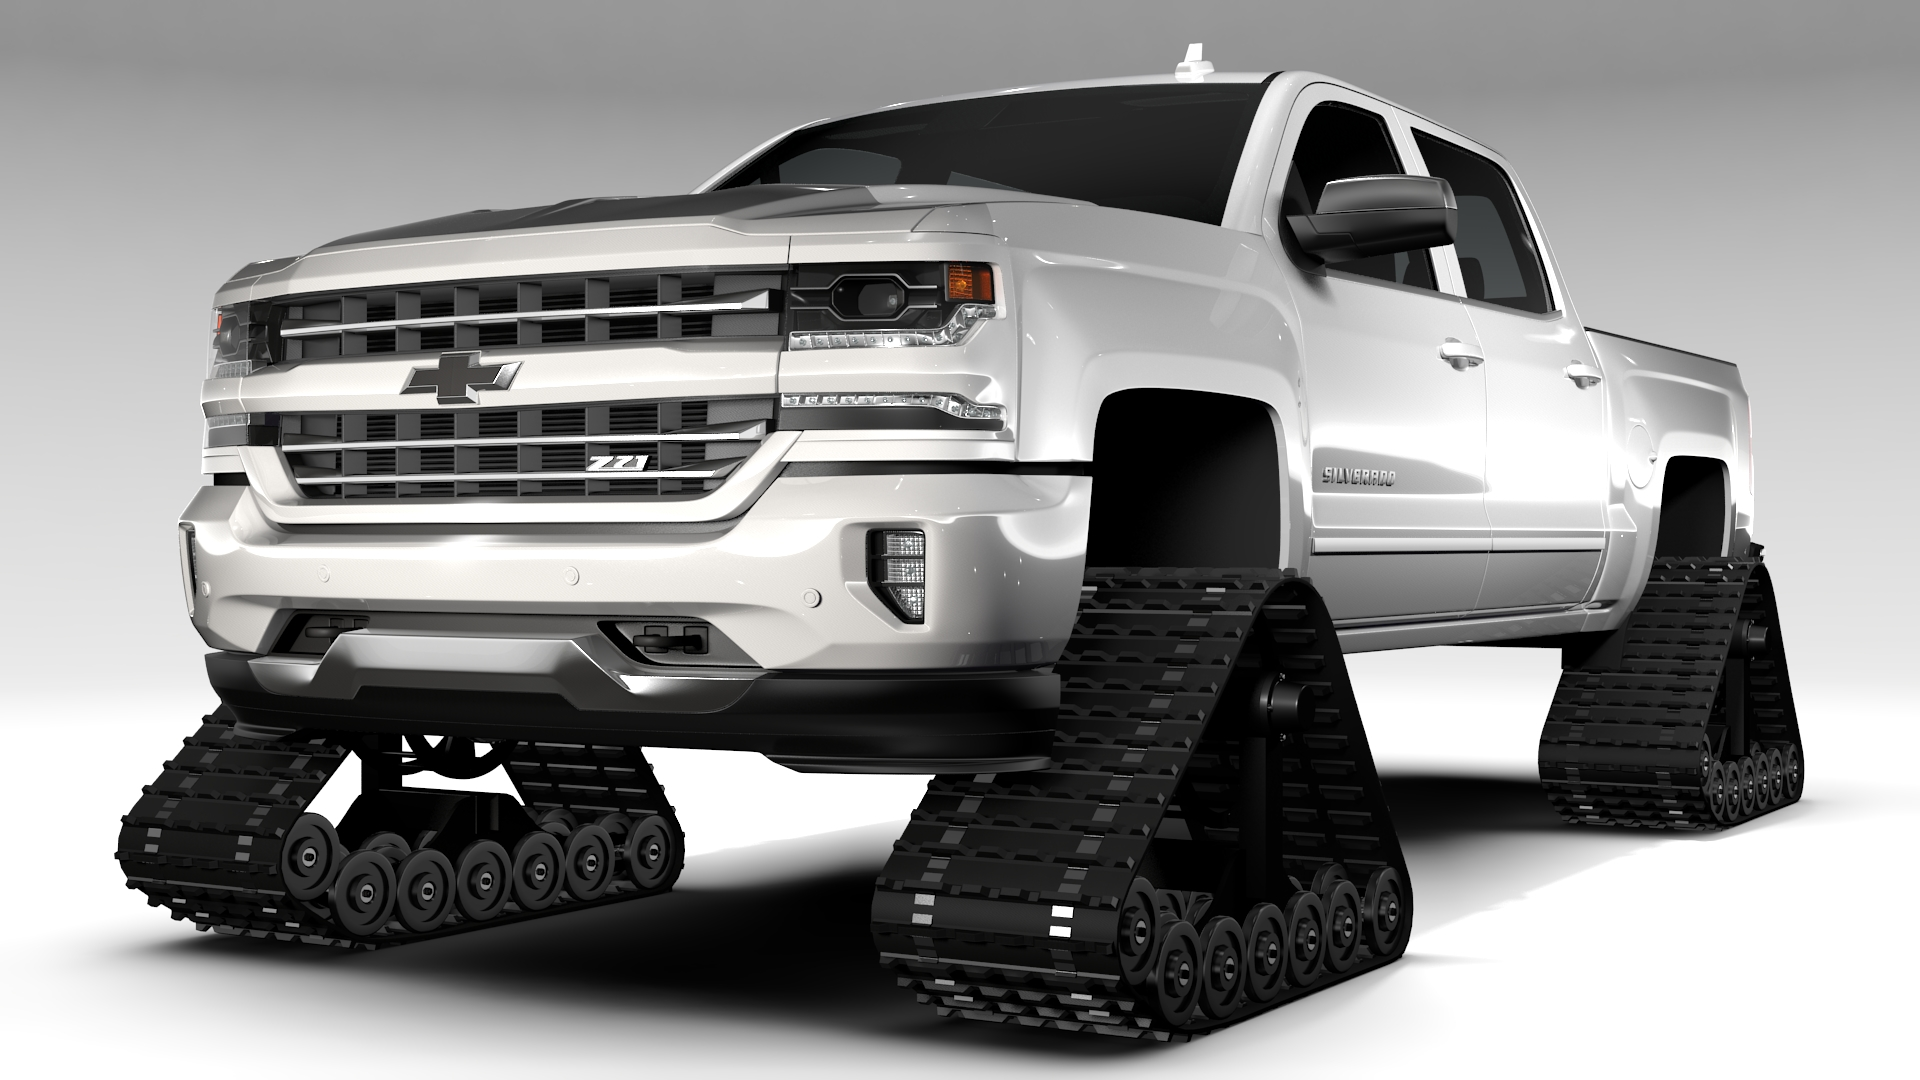 chevrolet silverado ltz z71 crawler 2017 3d model buy chevrolet silverado ltz z71 crawler 2017. Black Bedroom Furniture Sets. Home Design Ideas